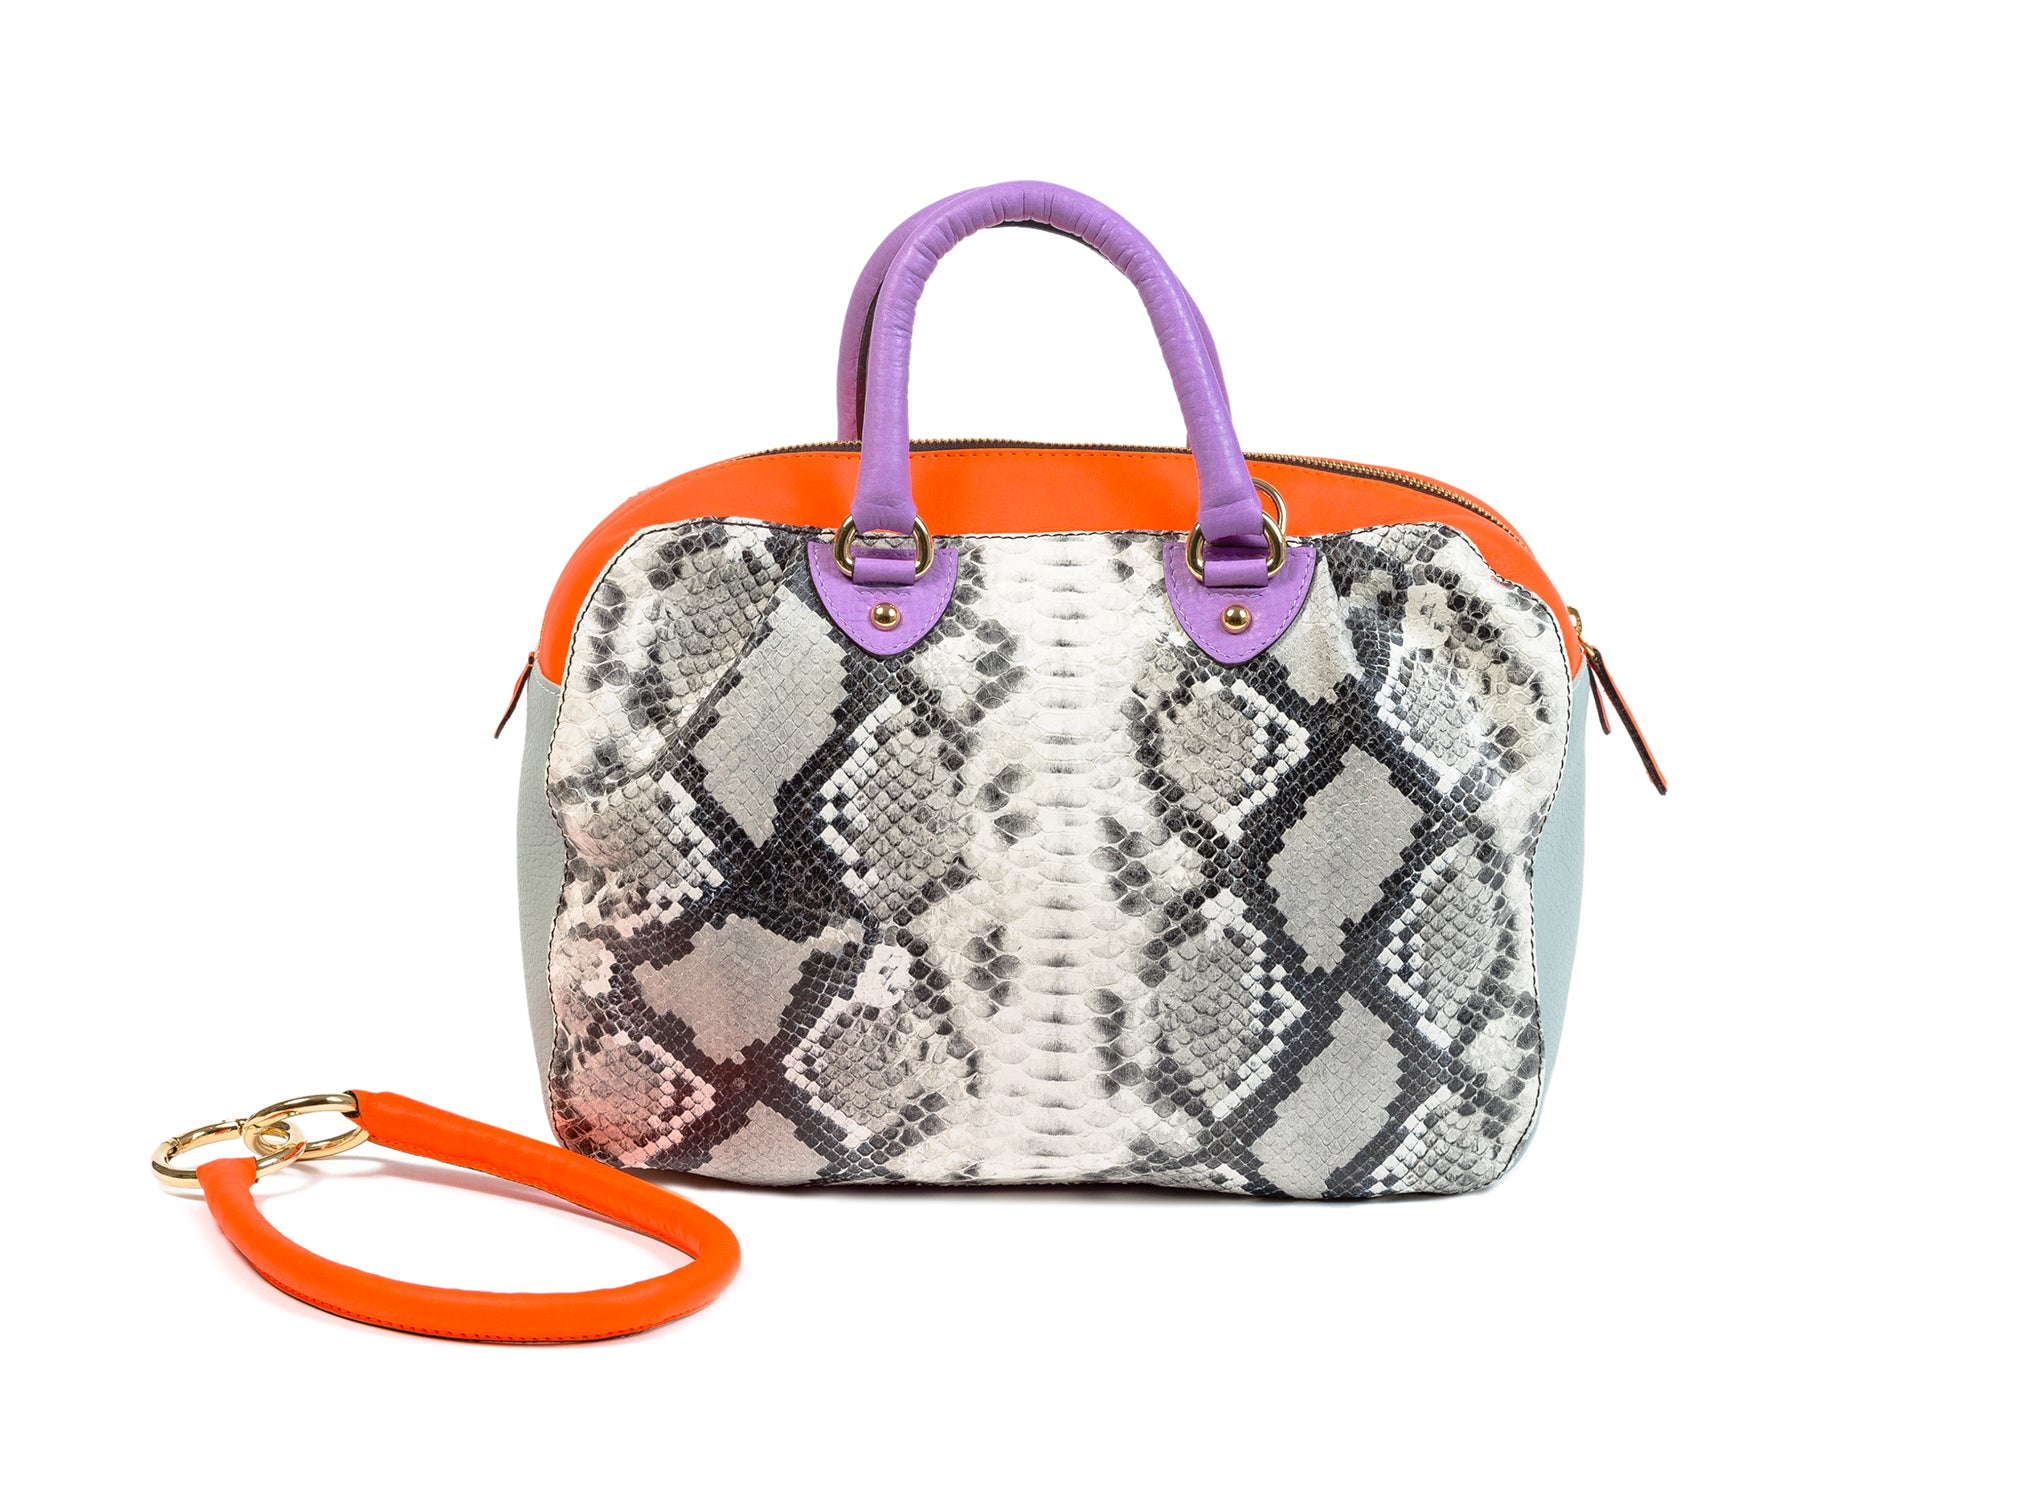 KALOS MEDIUM BAG SNAKE PRINT LEATHER IN BLACK AND WHITE